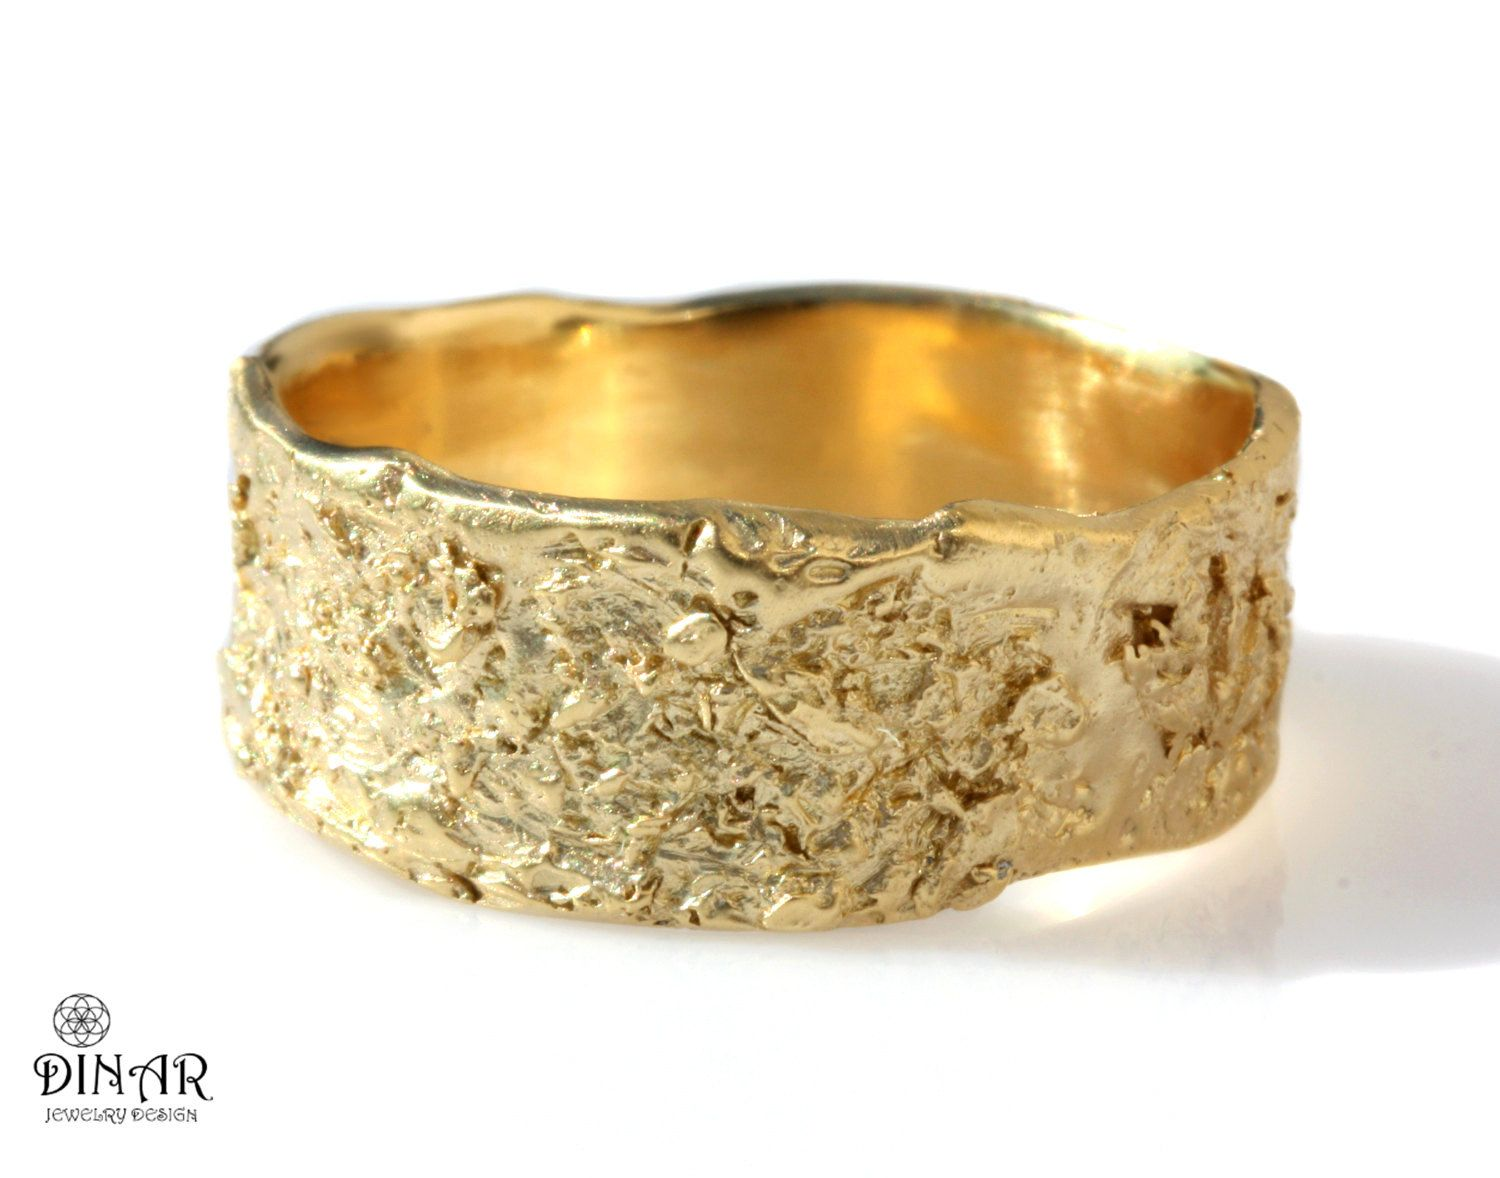 18k wedding band rustic 14k yellow gold ring wide by dinarjewelry 18k wedding band rustic 14k yellow gold ring wide by dinarjewelry publicscrutiny Images